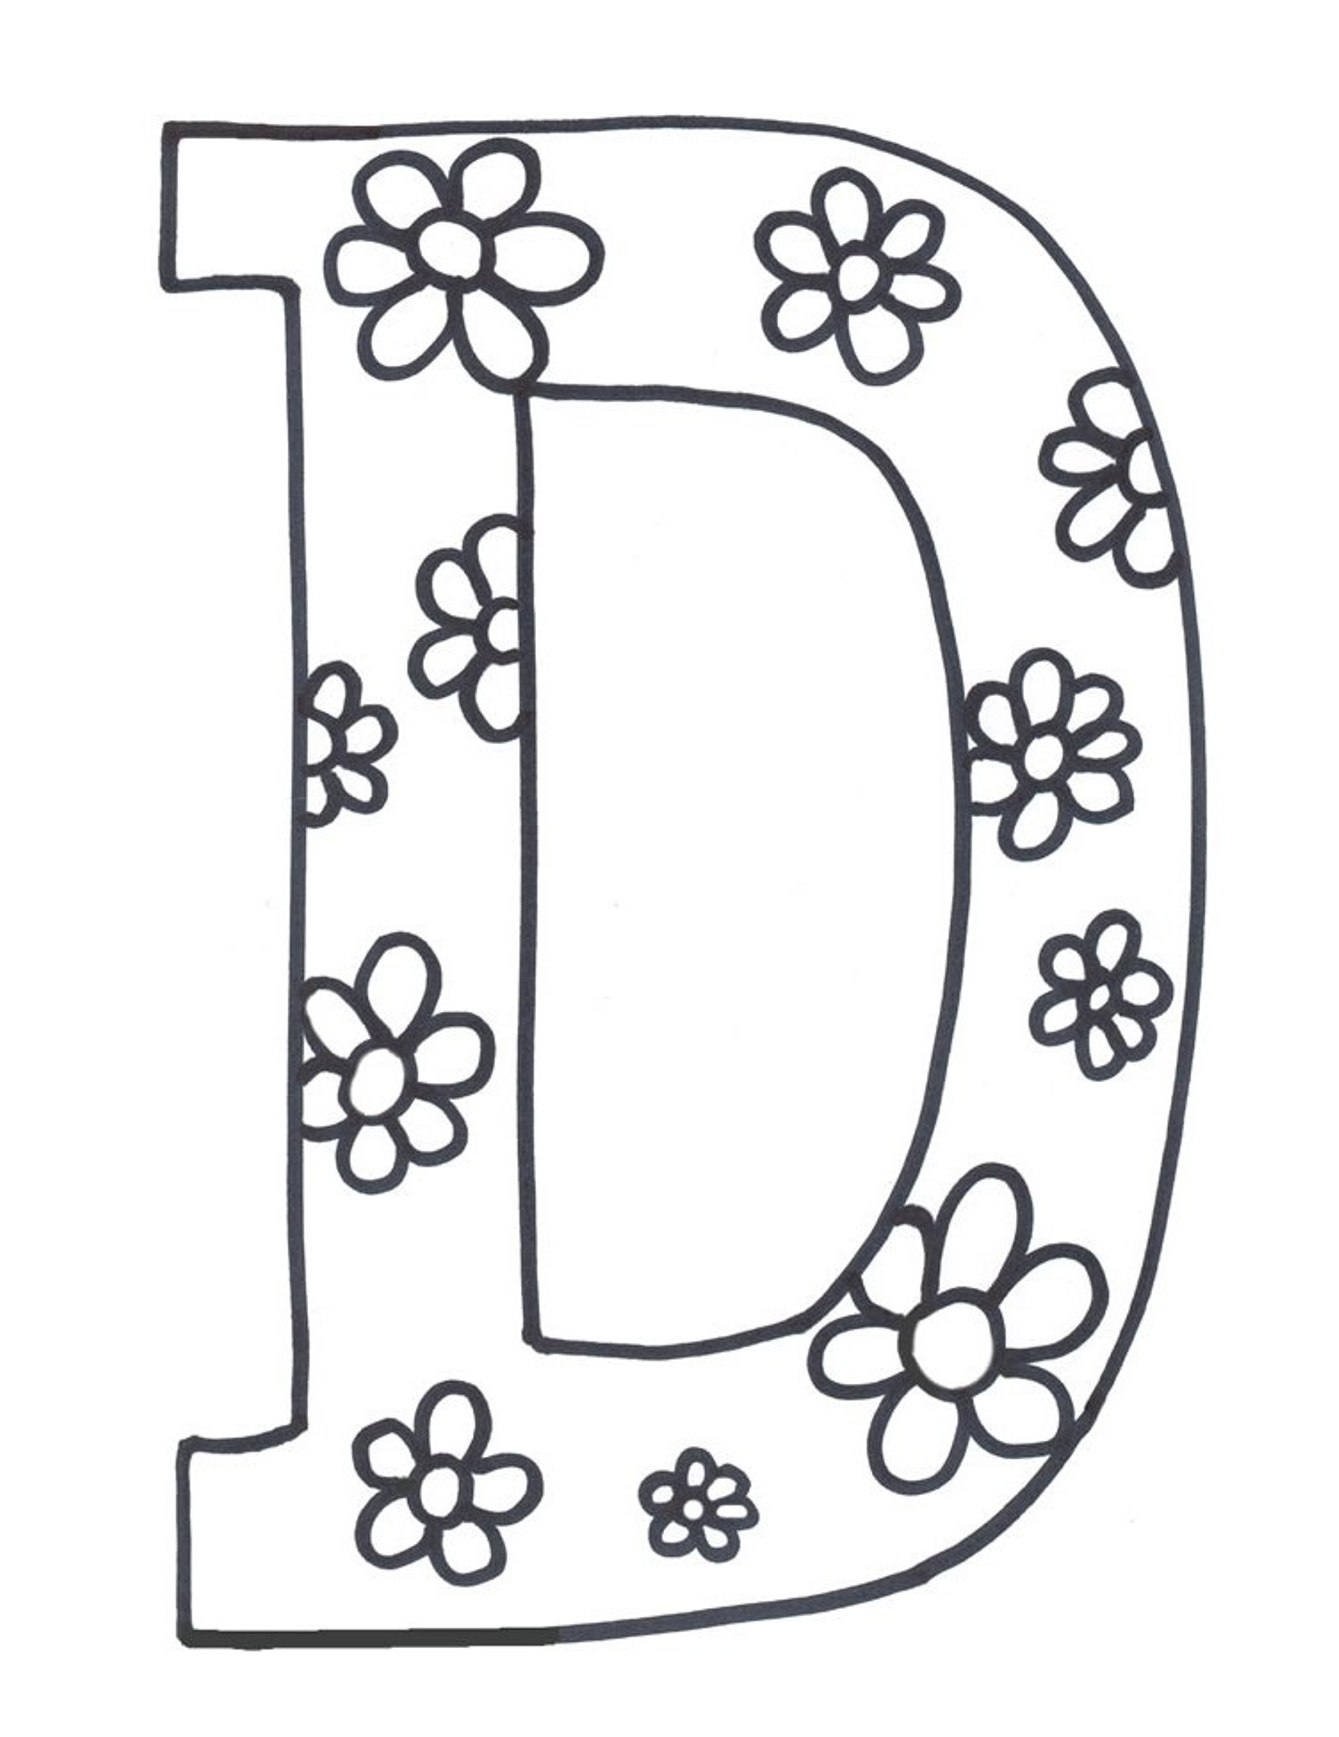 Letter d coloring pages to download